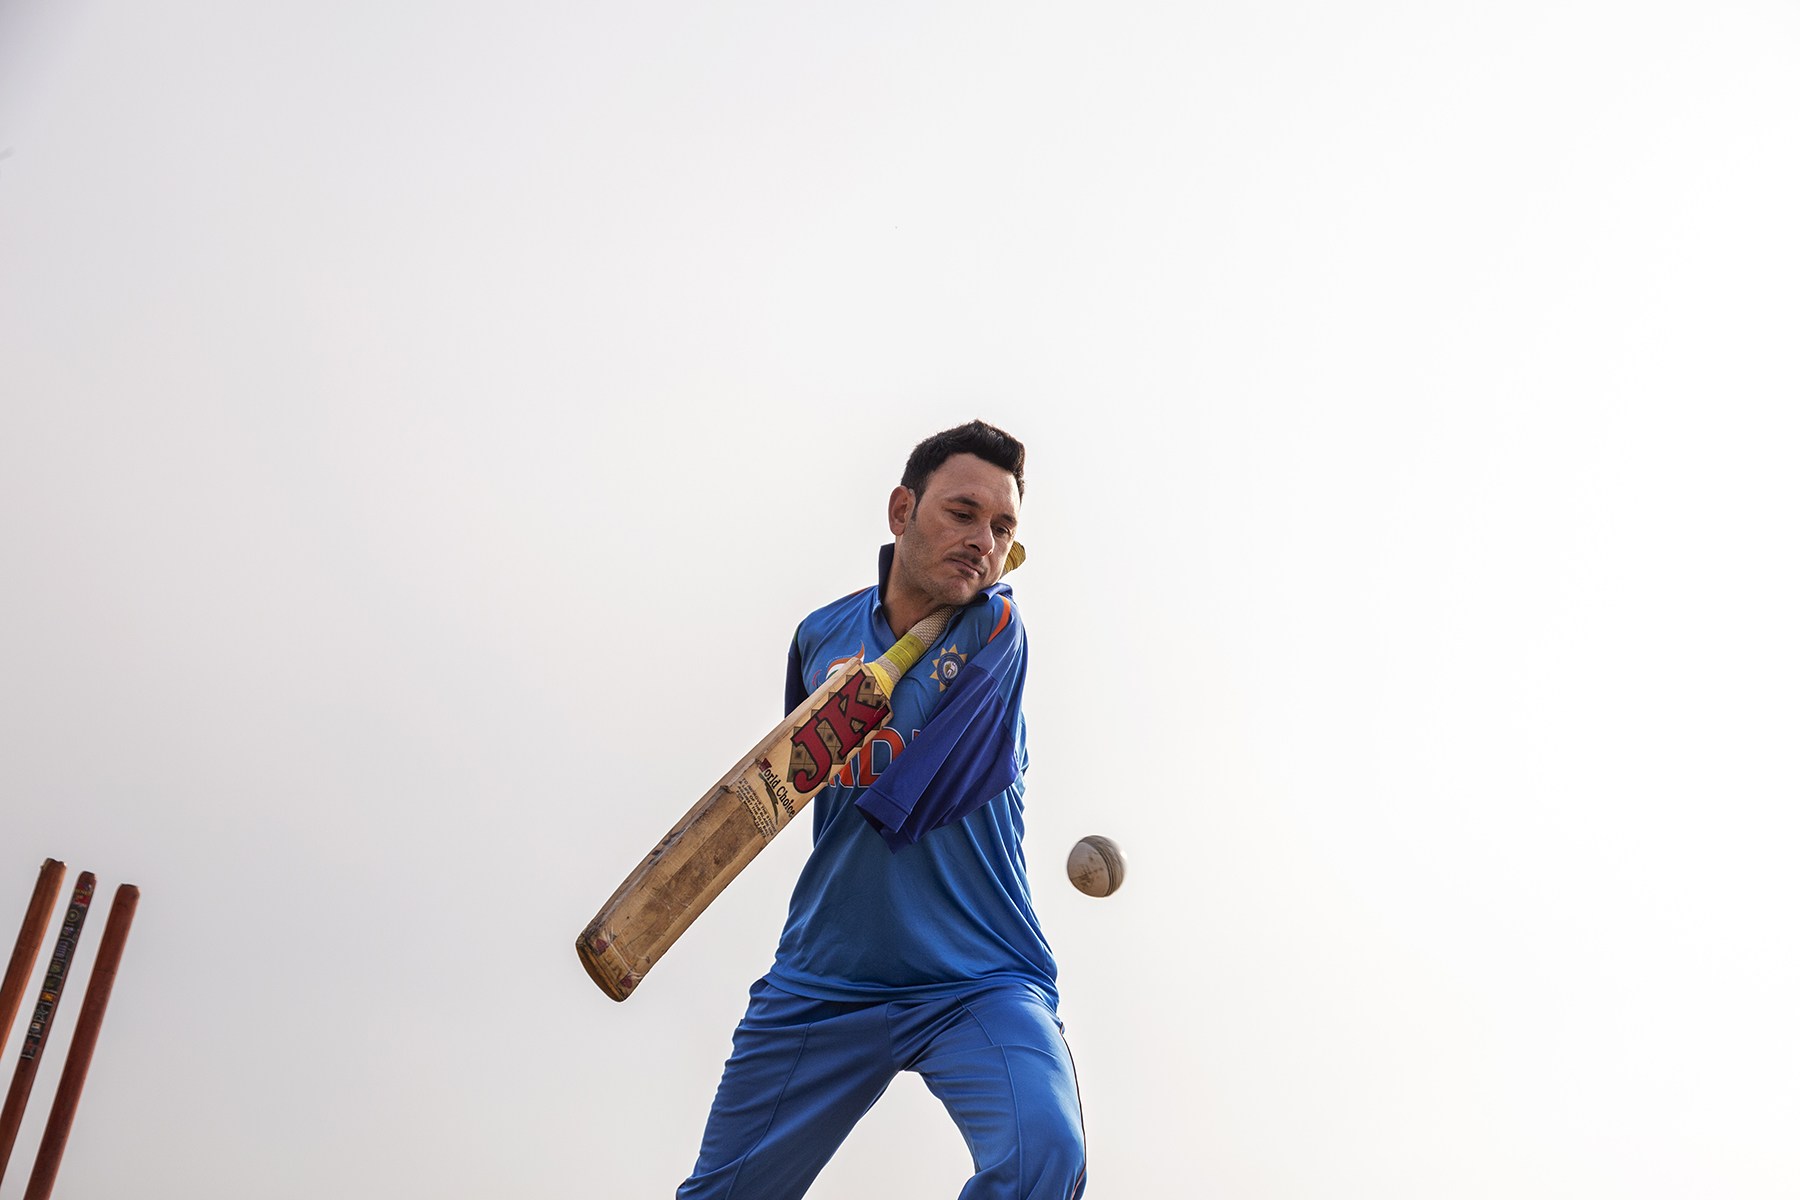 Amir in blue cricketing uniform is framed against a stark white sky, caught in the act of batting. The cricket bat is at an angle, tucked under his chin, and the ball captured by the camera is frozen at waist level. Three stumps jut out from the bottom left corner of the frame.